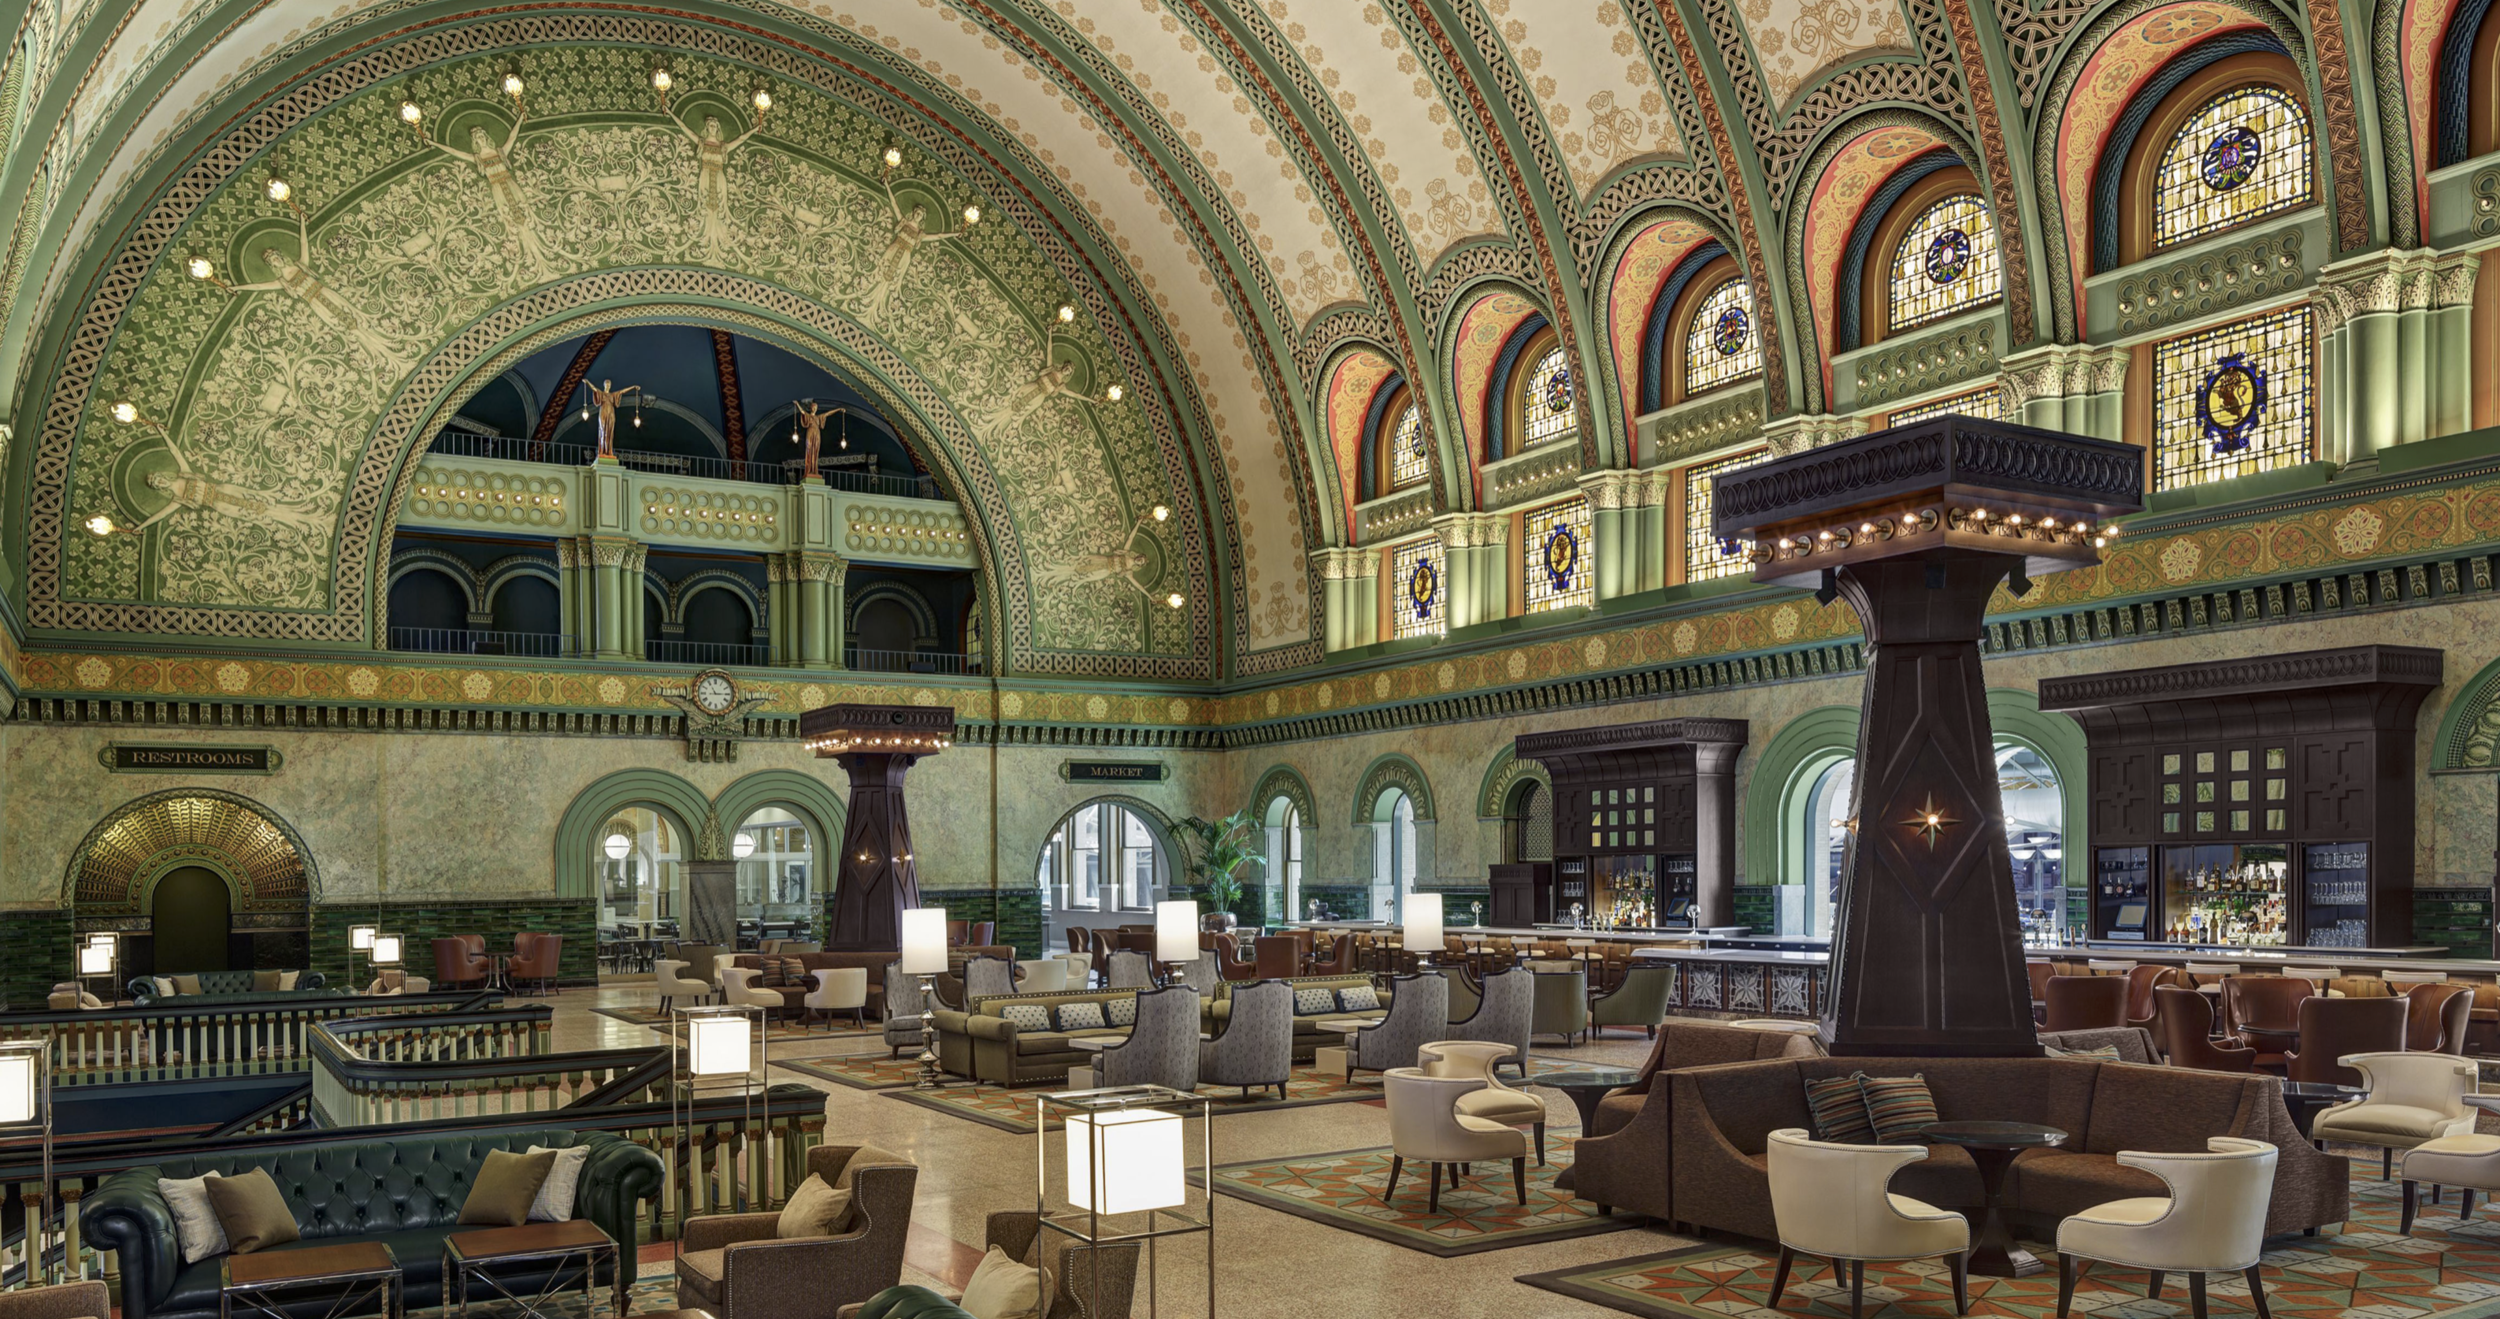 May 28th - Union Station Grand Hall